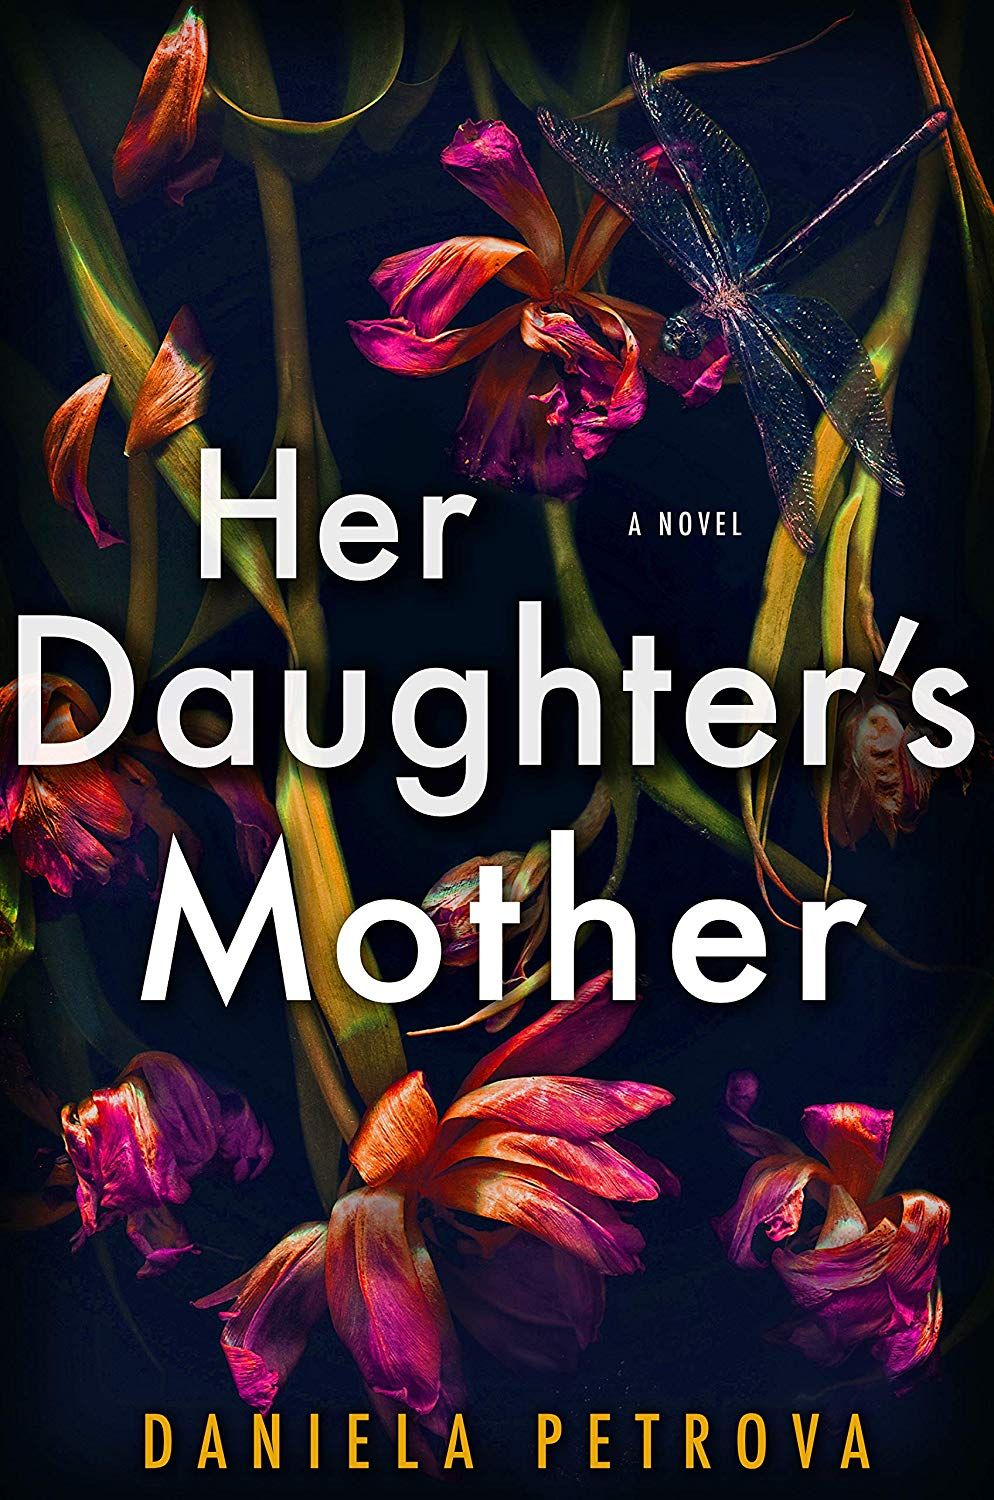 Her Daughter's Mother - Kindle edition by Daniela Petrova